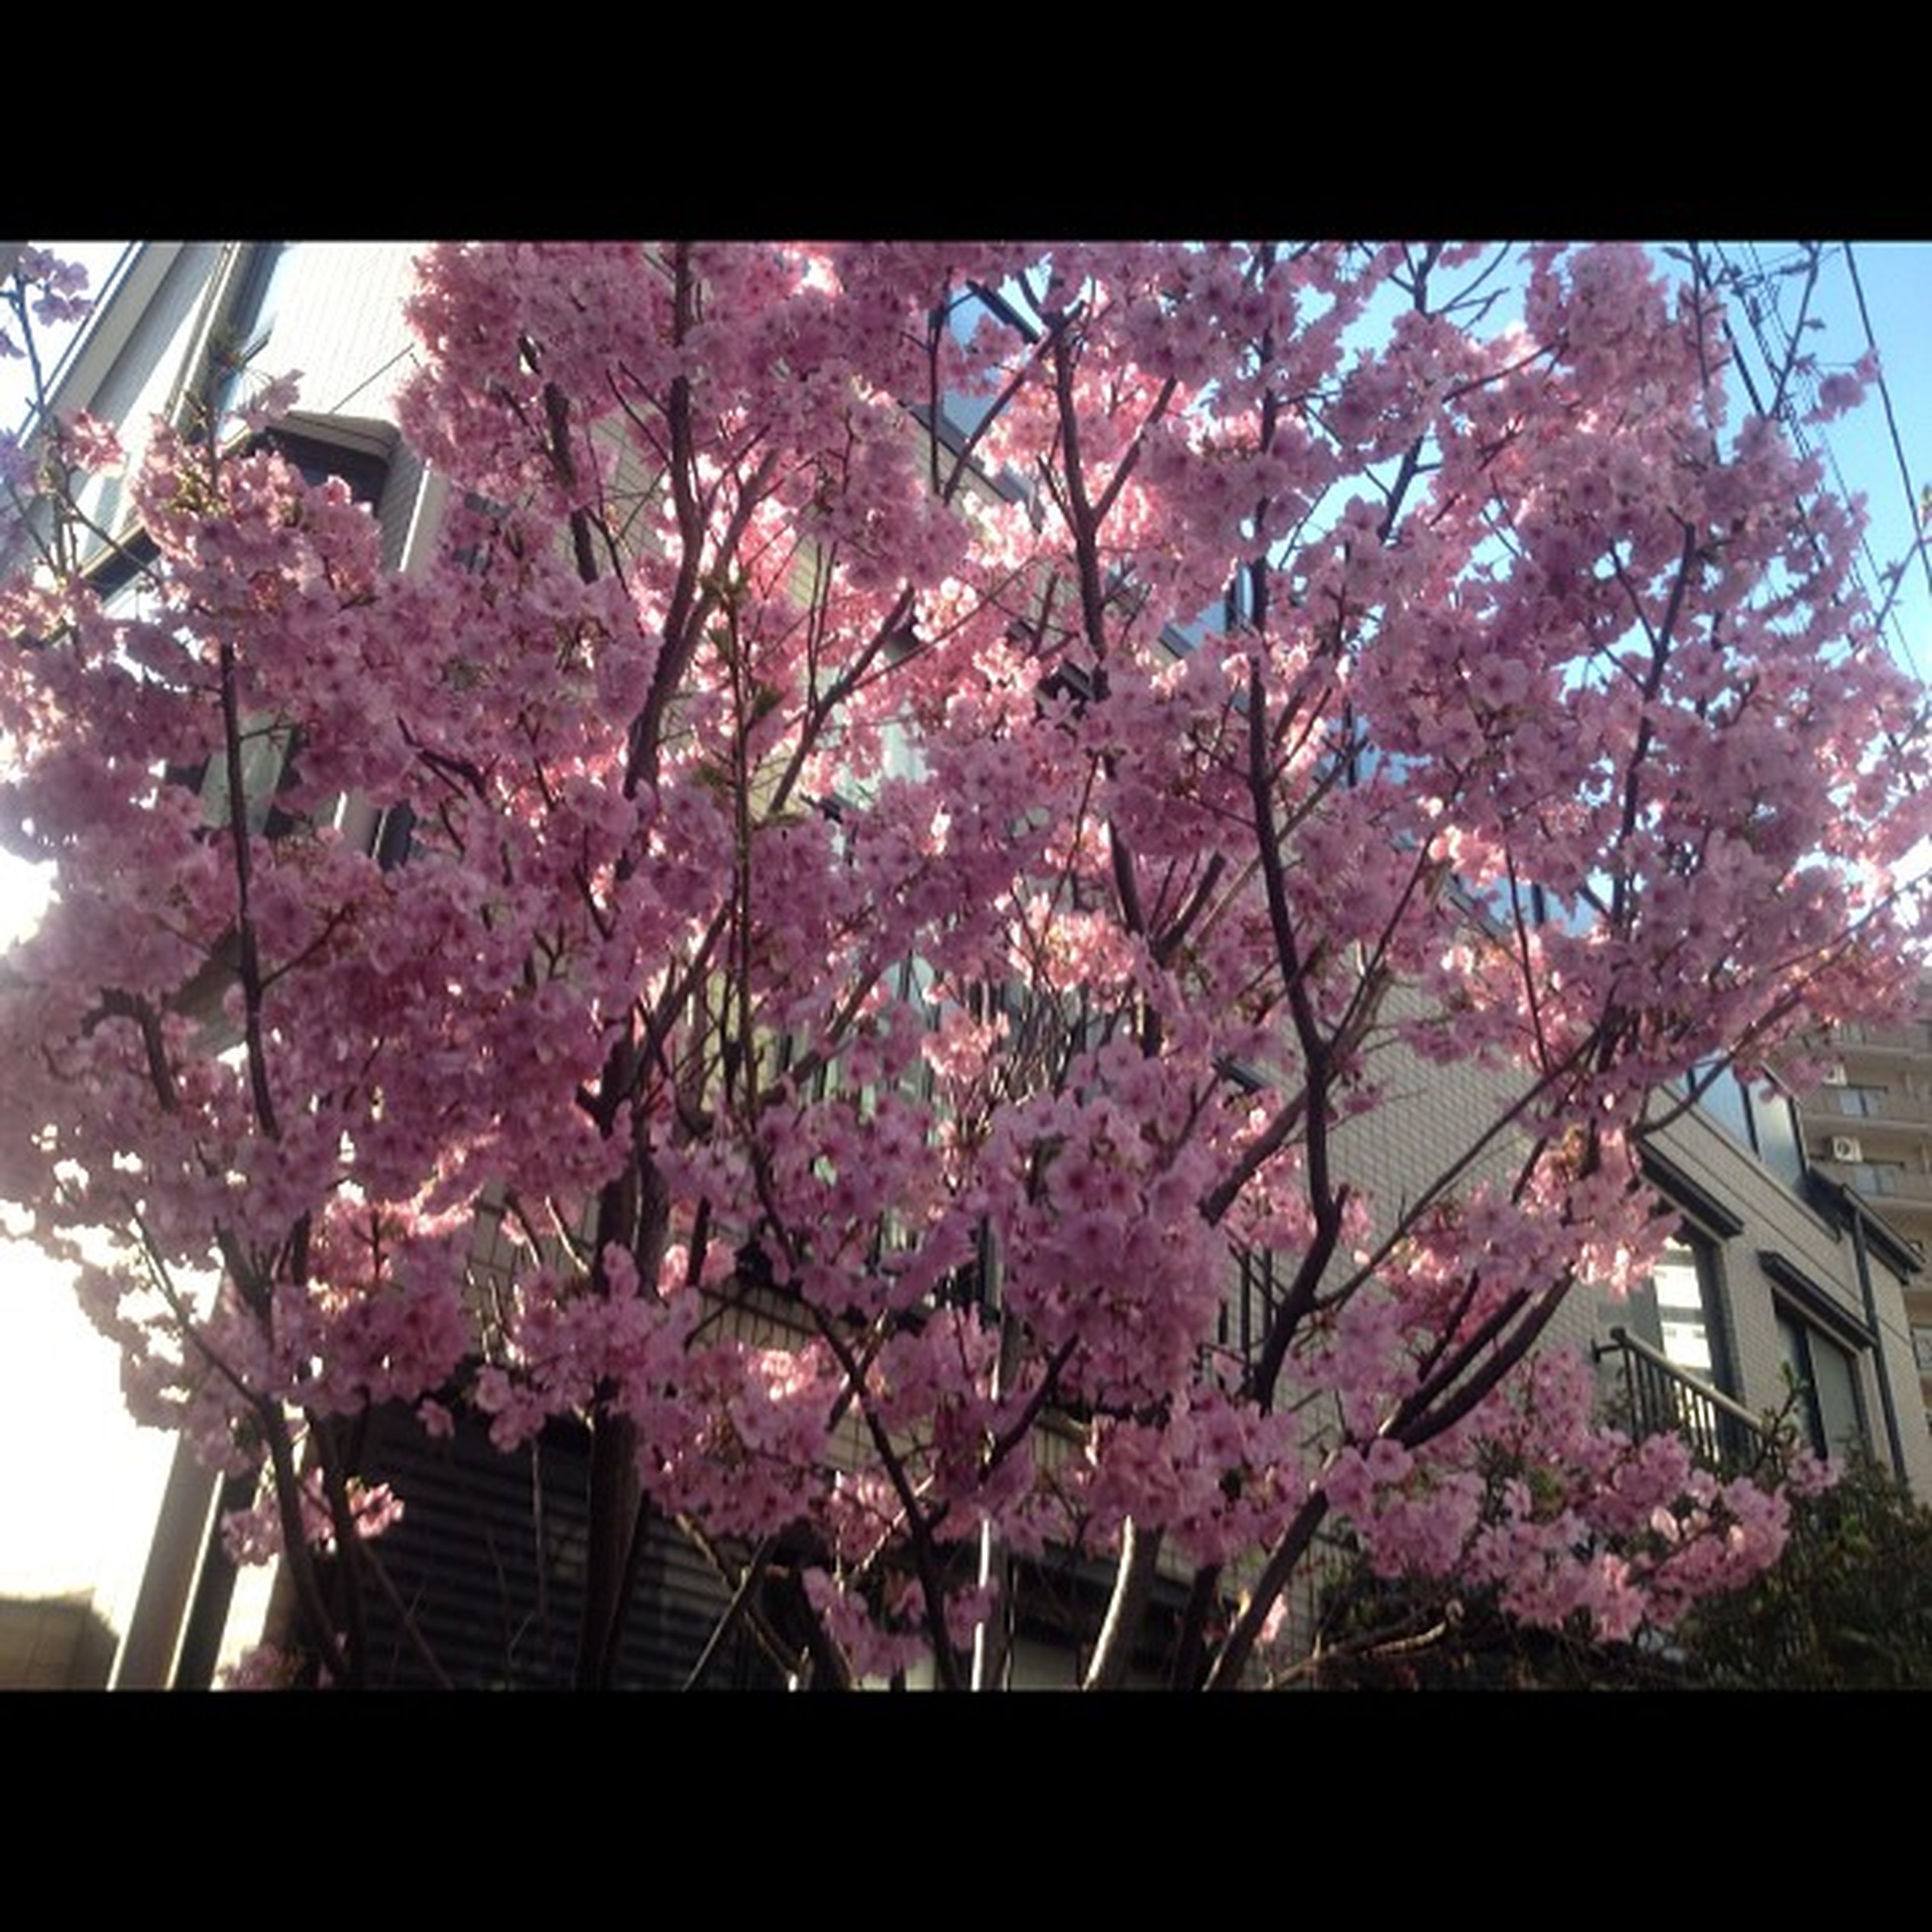 flower, tree, low angle view, branch, growth, pink color, built structure, building exterior, freshness, architecture, blossom, cherry blossom, fragility, nature, cherry tree, beauty in nature, pink, in bloom, day, outdoors